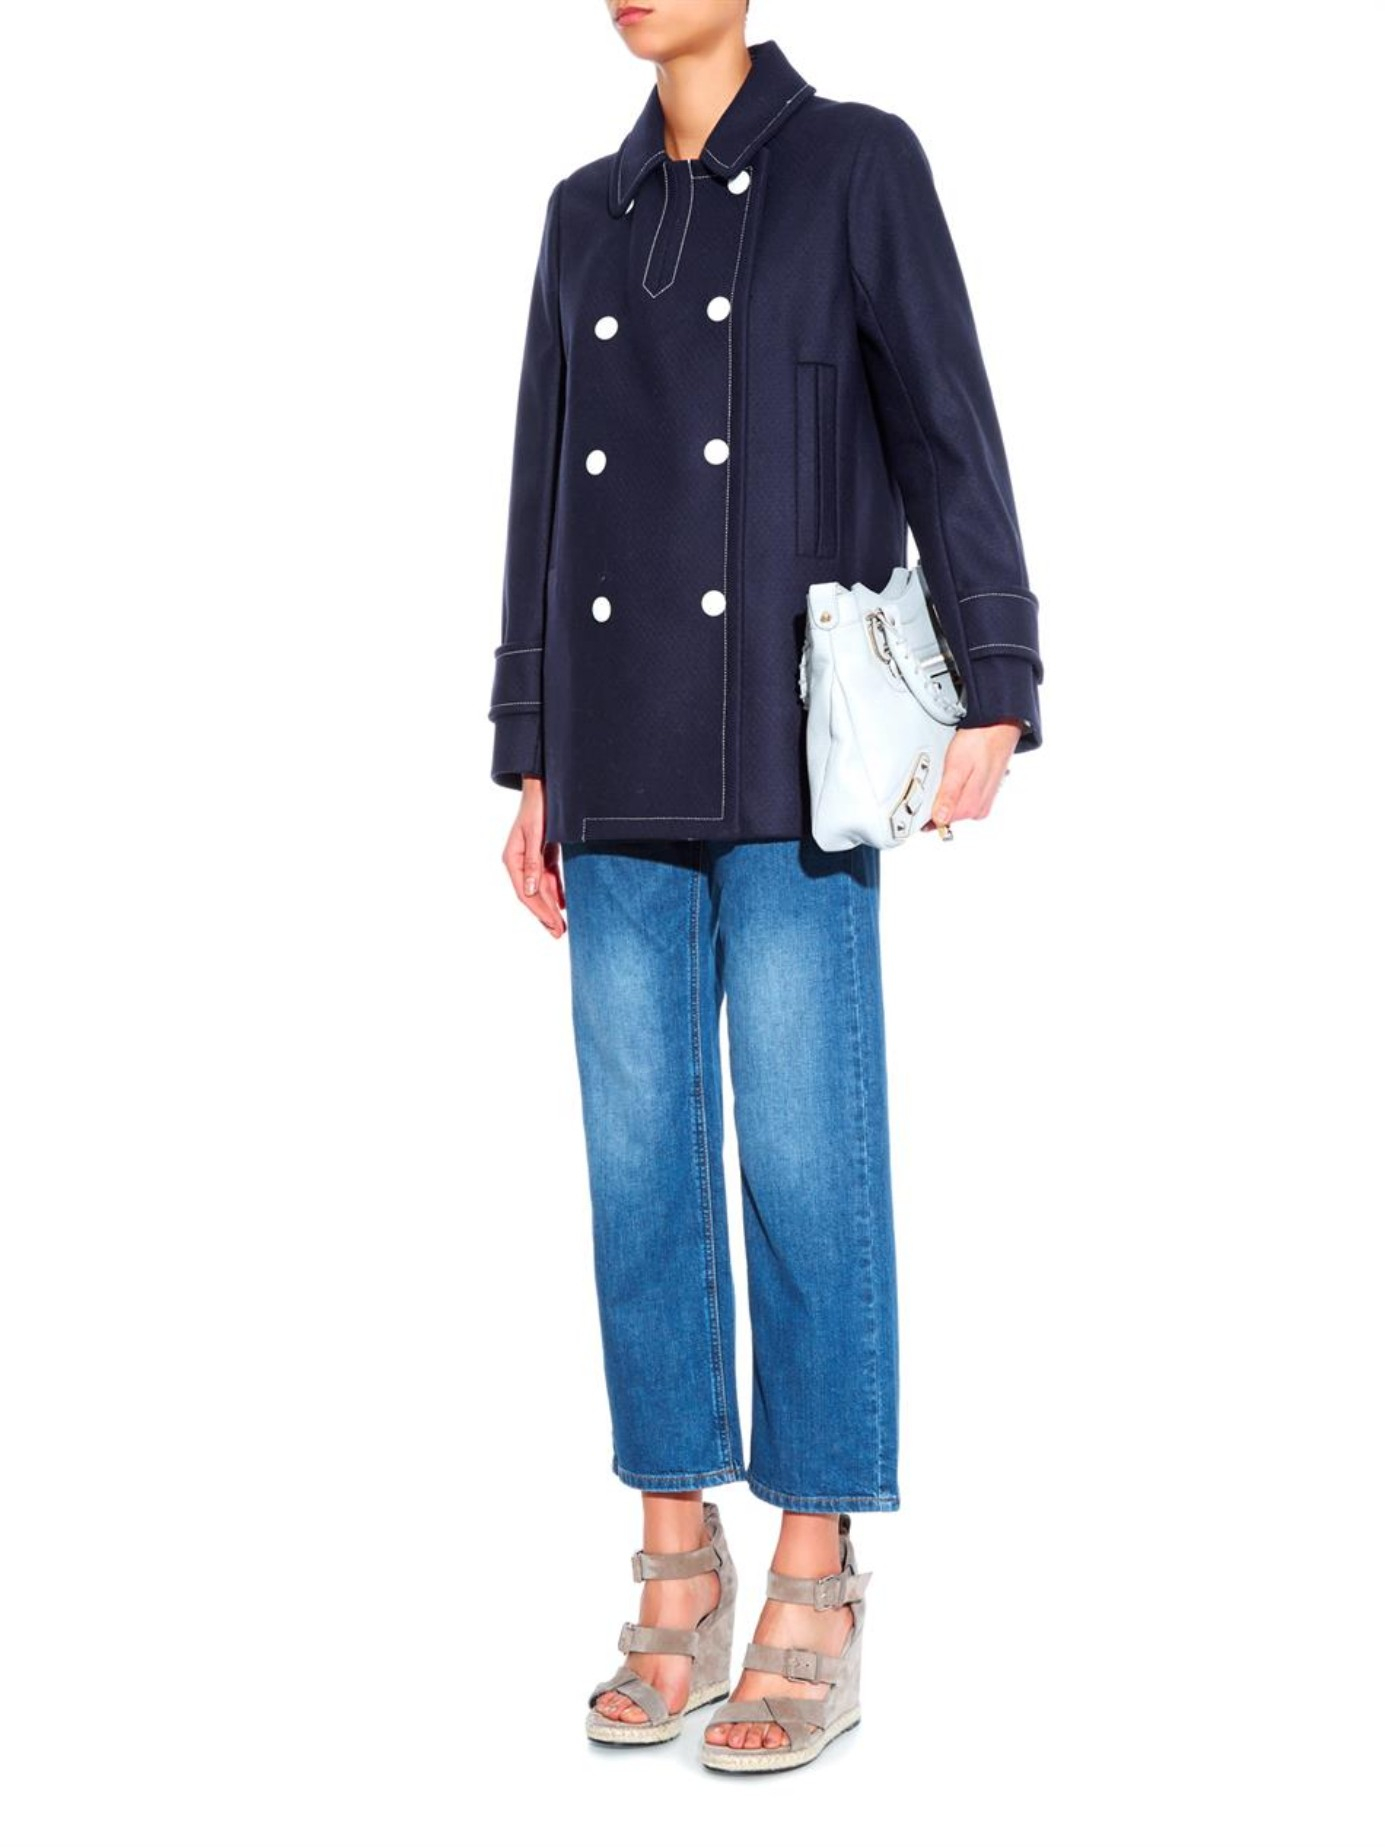 See by chloé Double-Breasted Coat in Blue